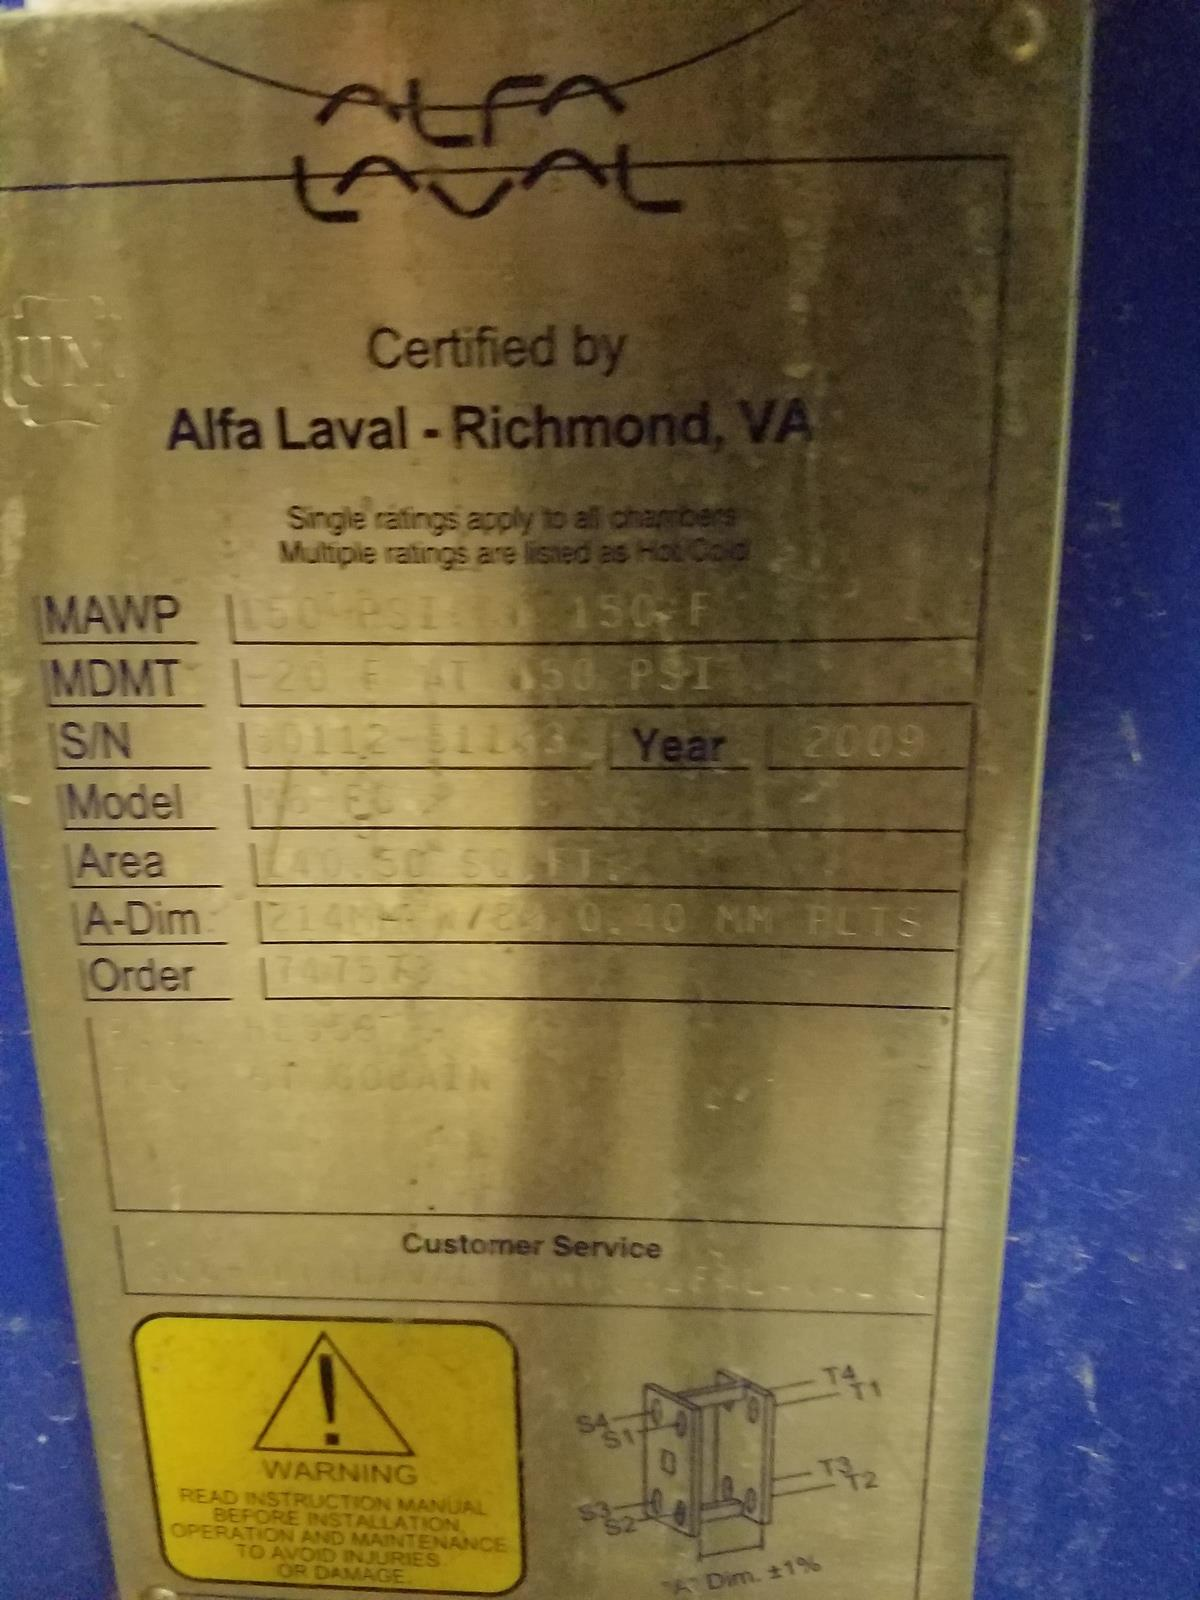 Alfa Laval Heat Exchanger | Rig Fee: Hand Carry or Contact Rigger - Image 2 of 2